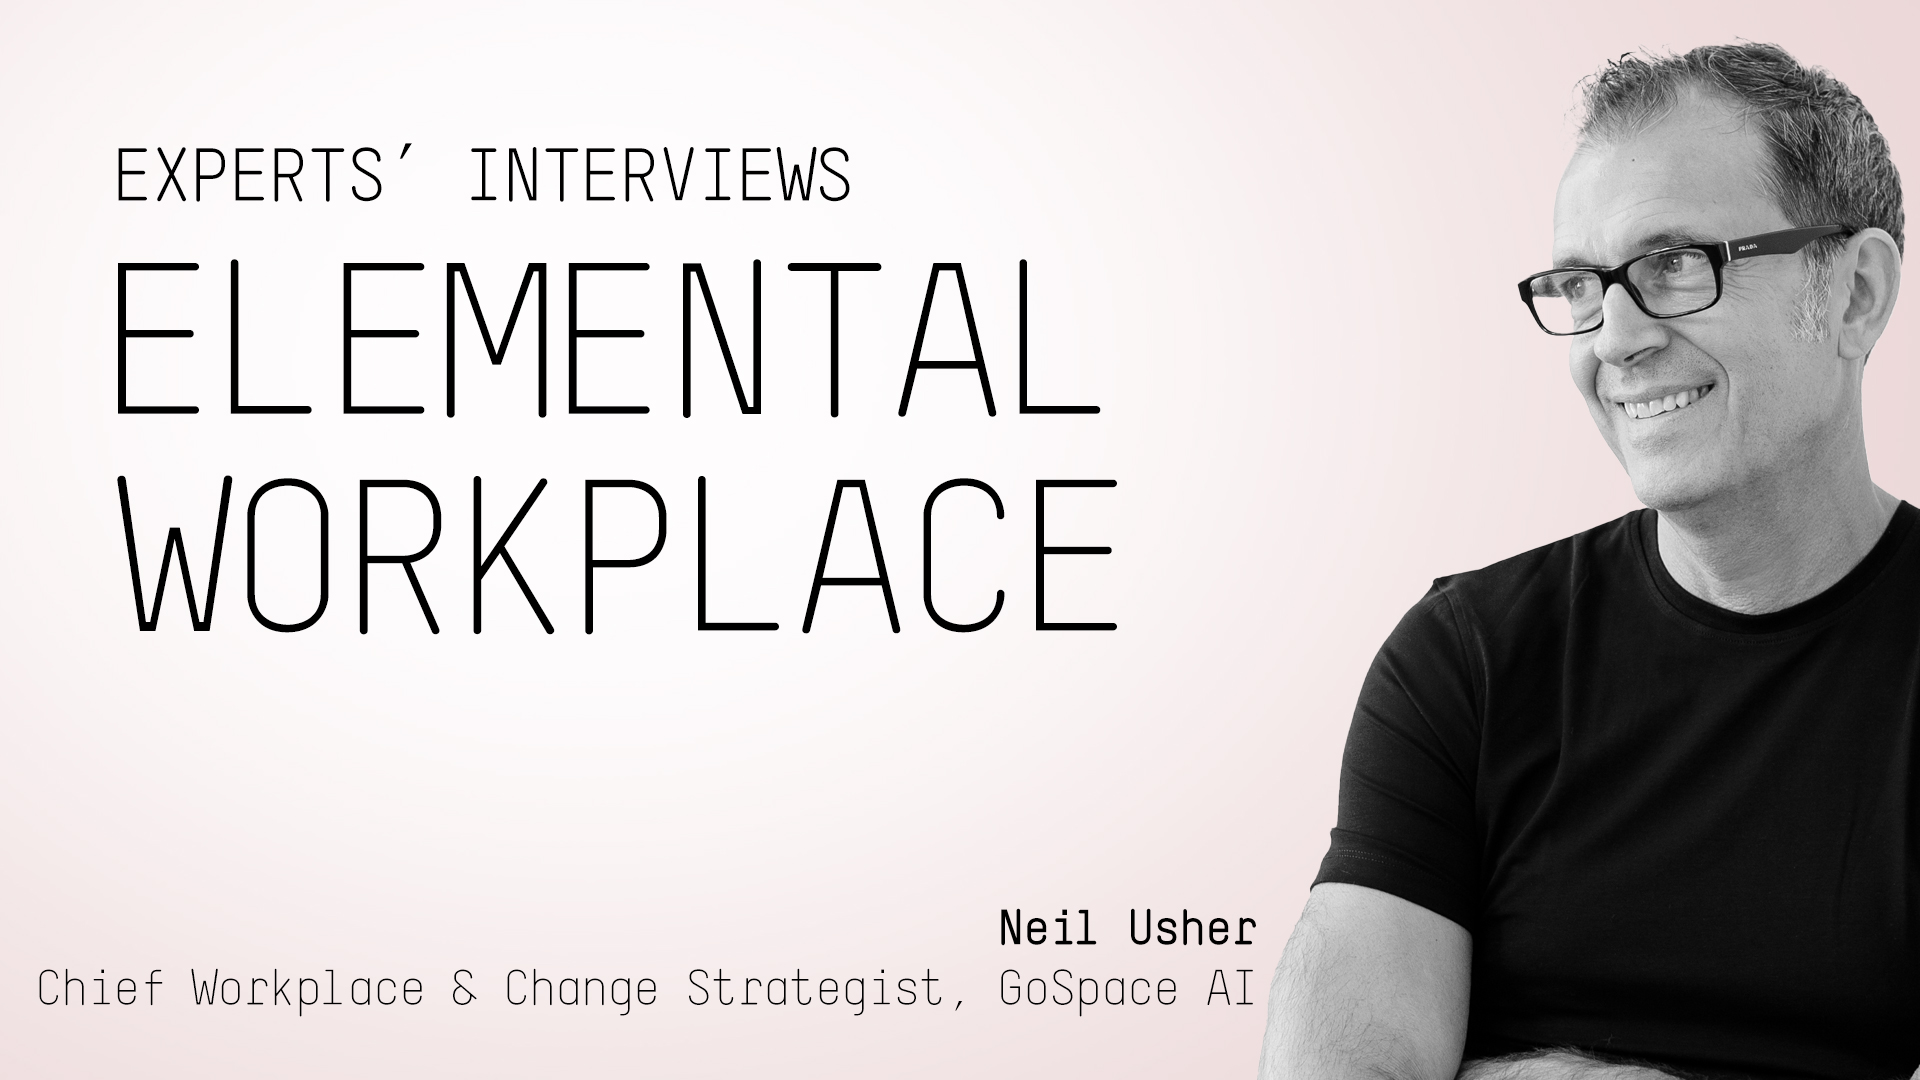 Neil Usher; about the world of the workplace